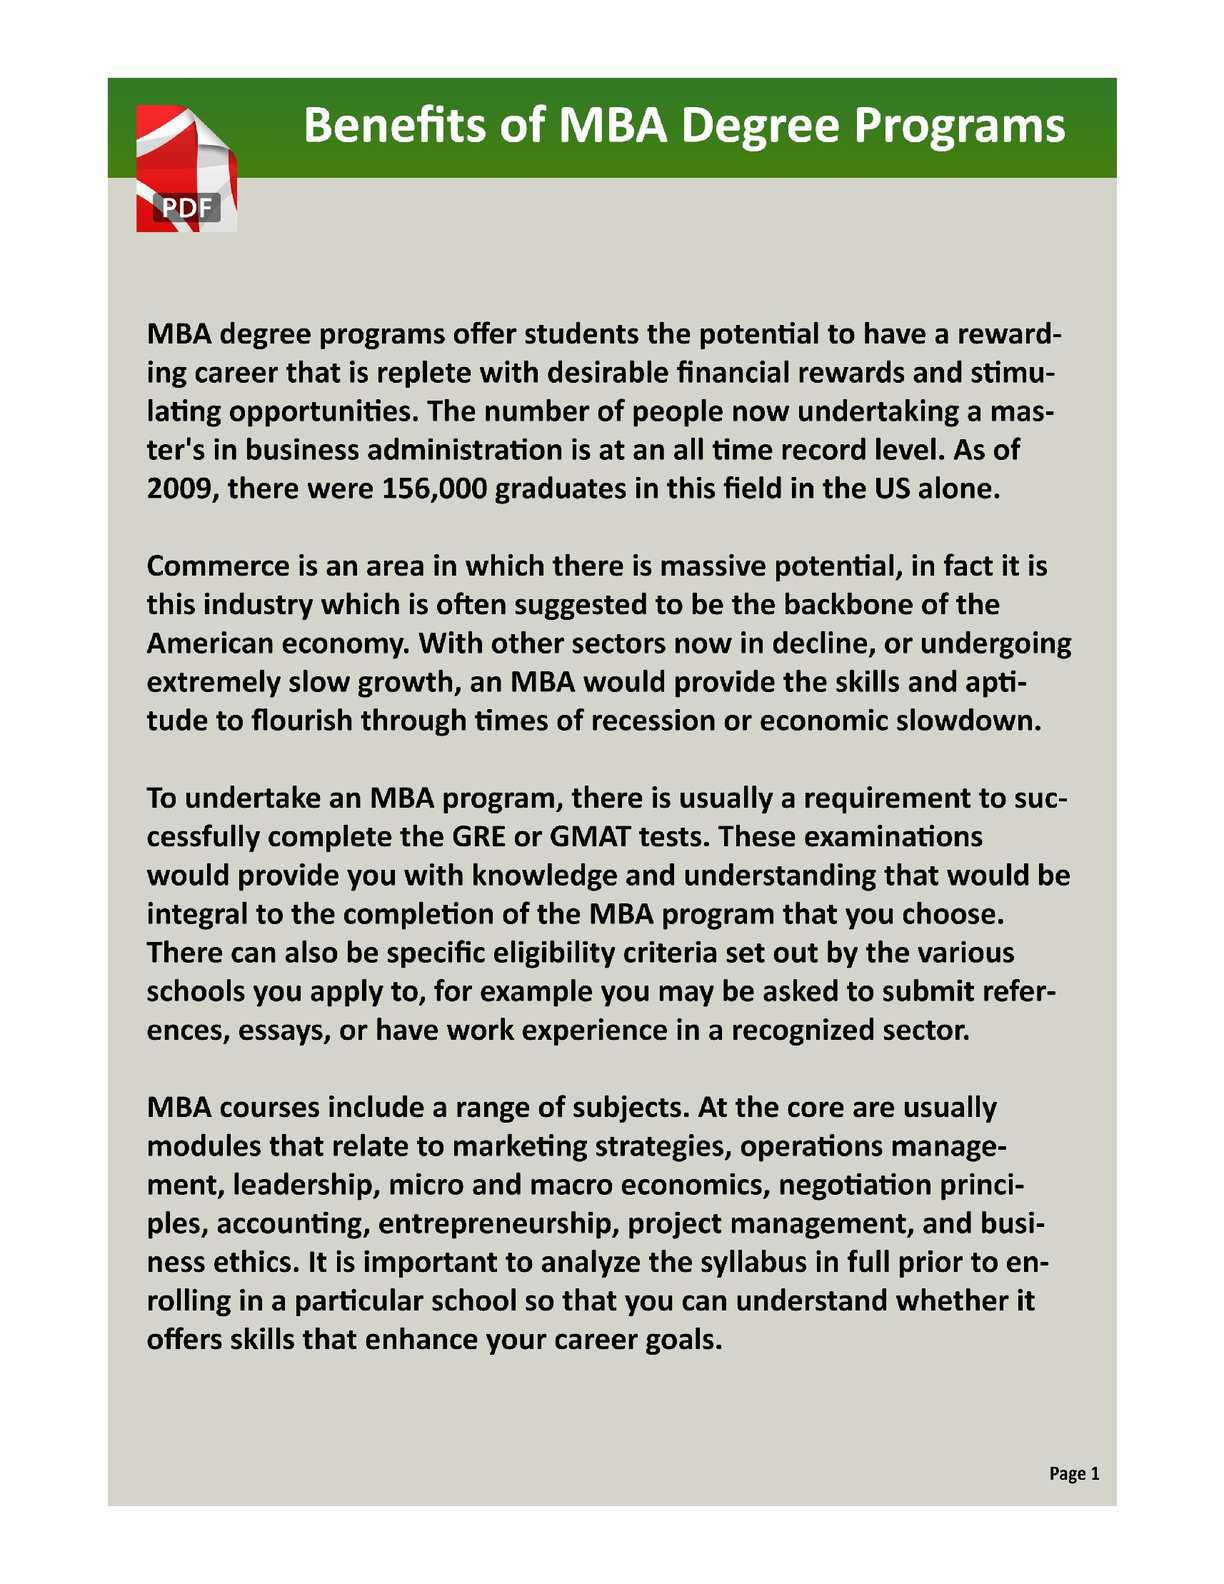 Calaméo - Benefits of MBA Education for Your Career